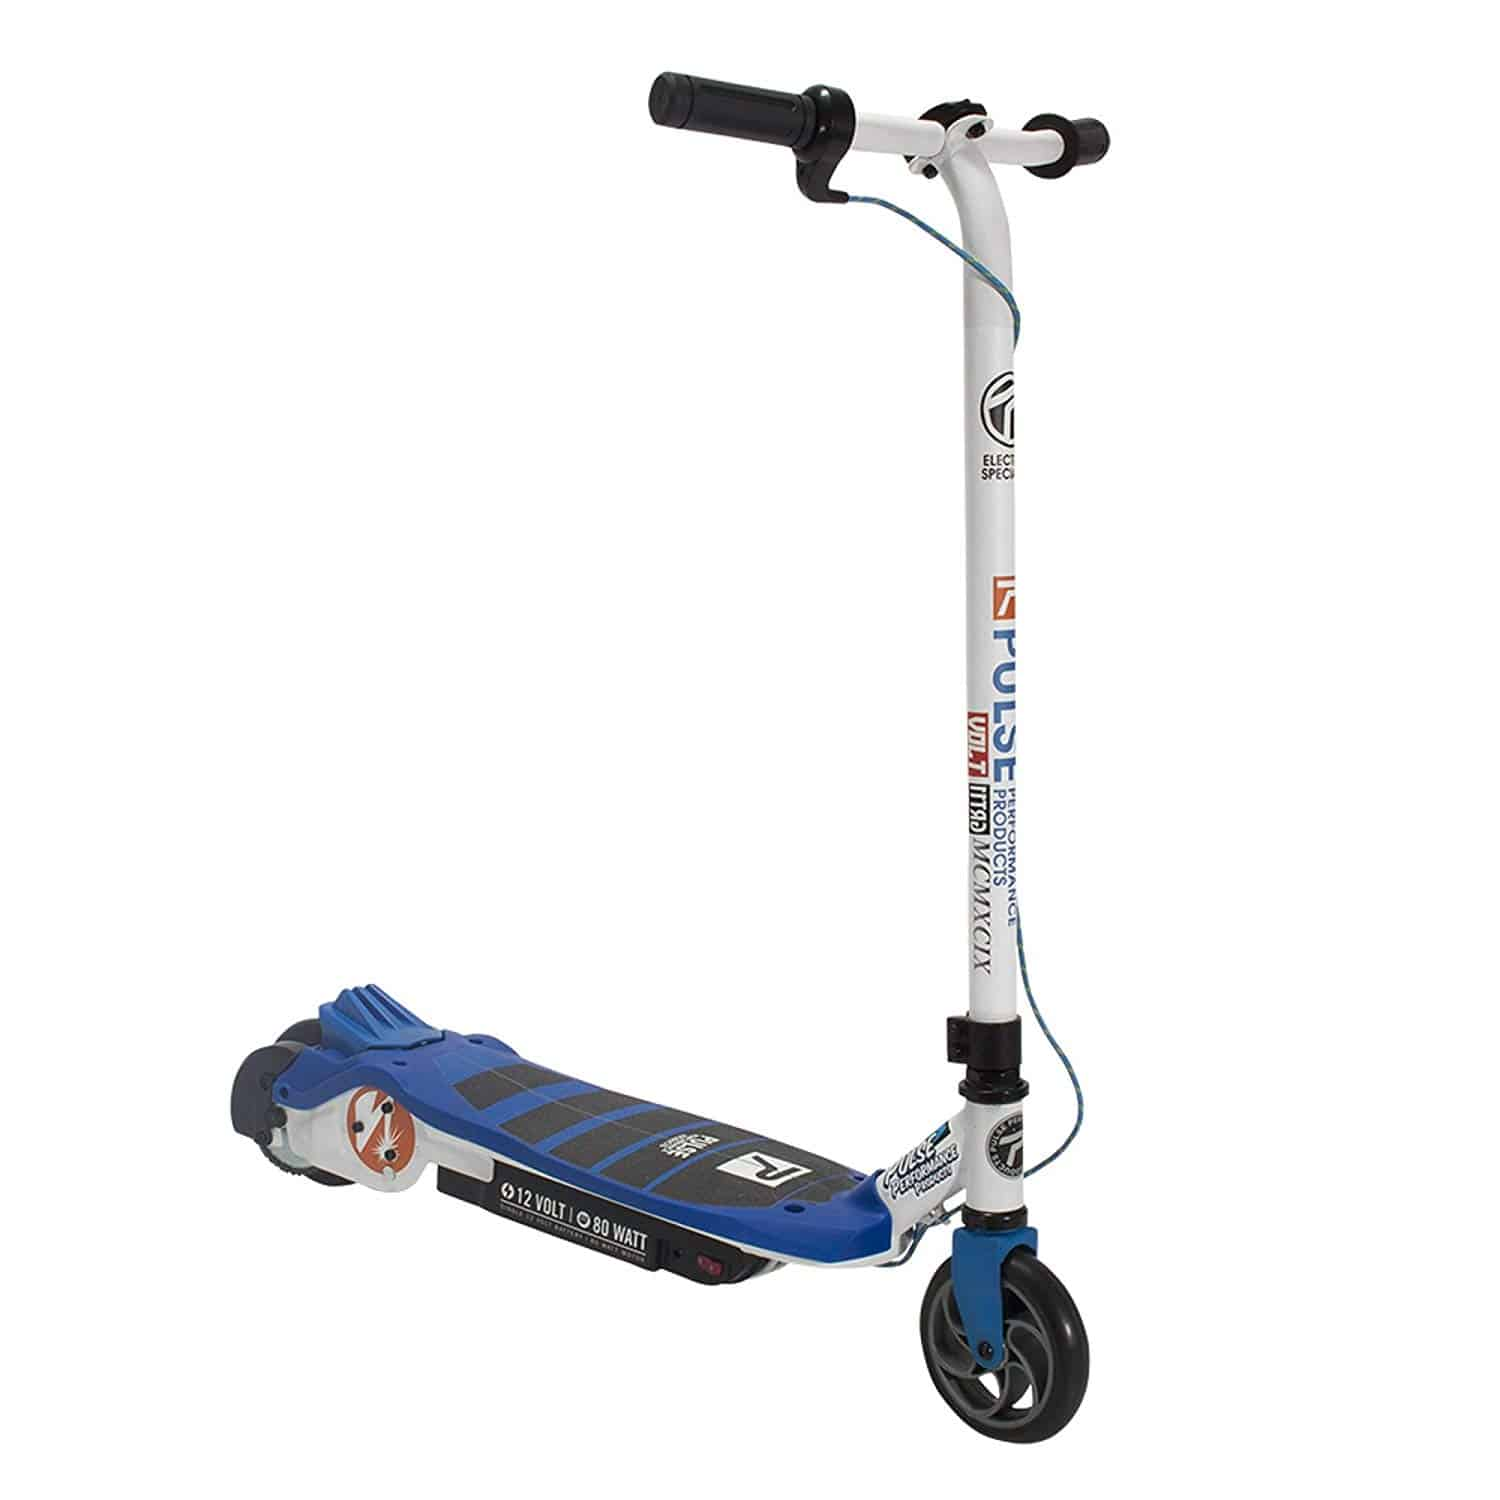 5 Best Electric Scooters for Kids Reviewed [2019] | Hobby Help